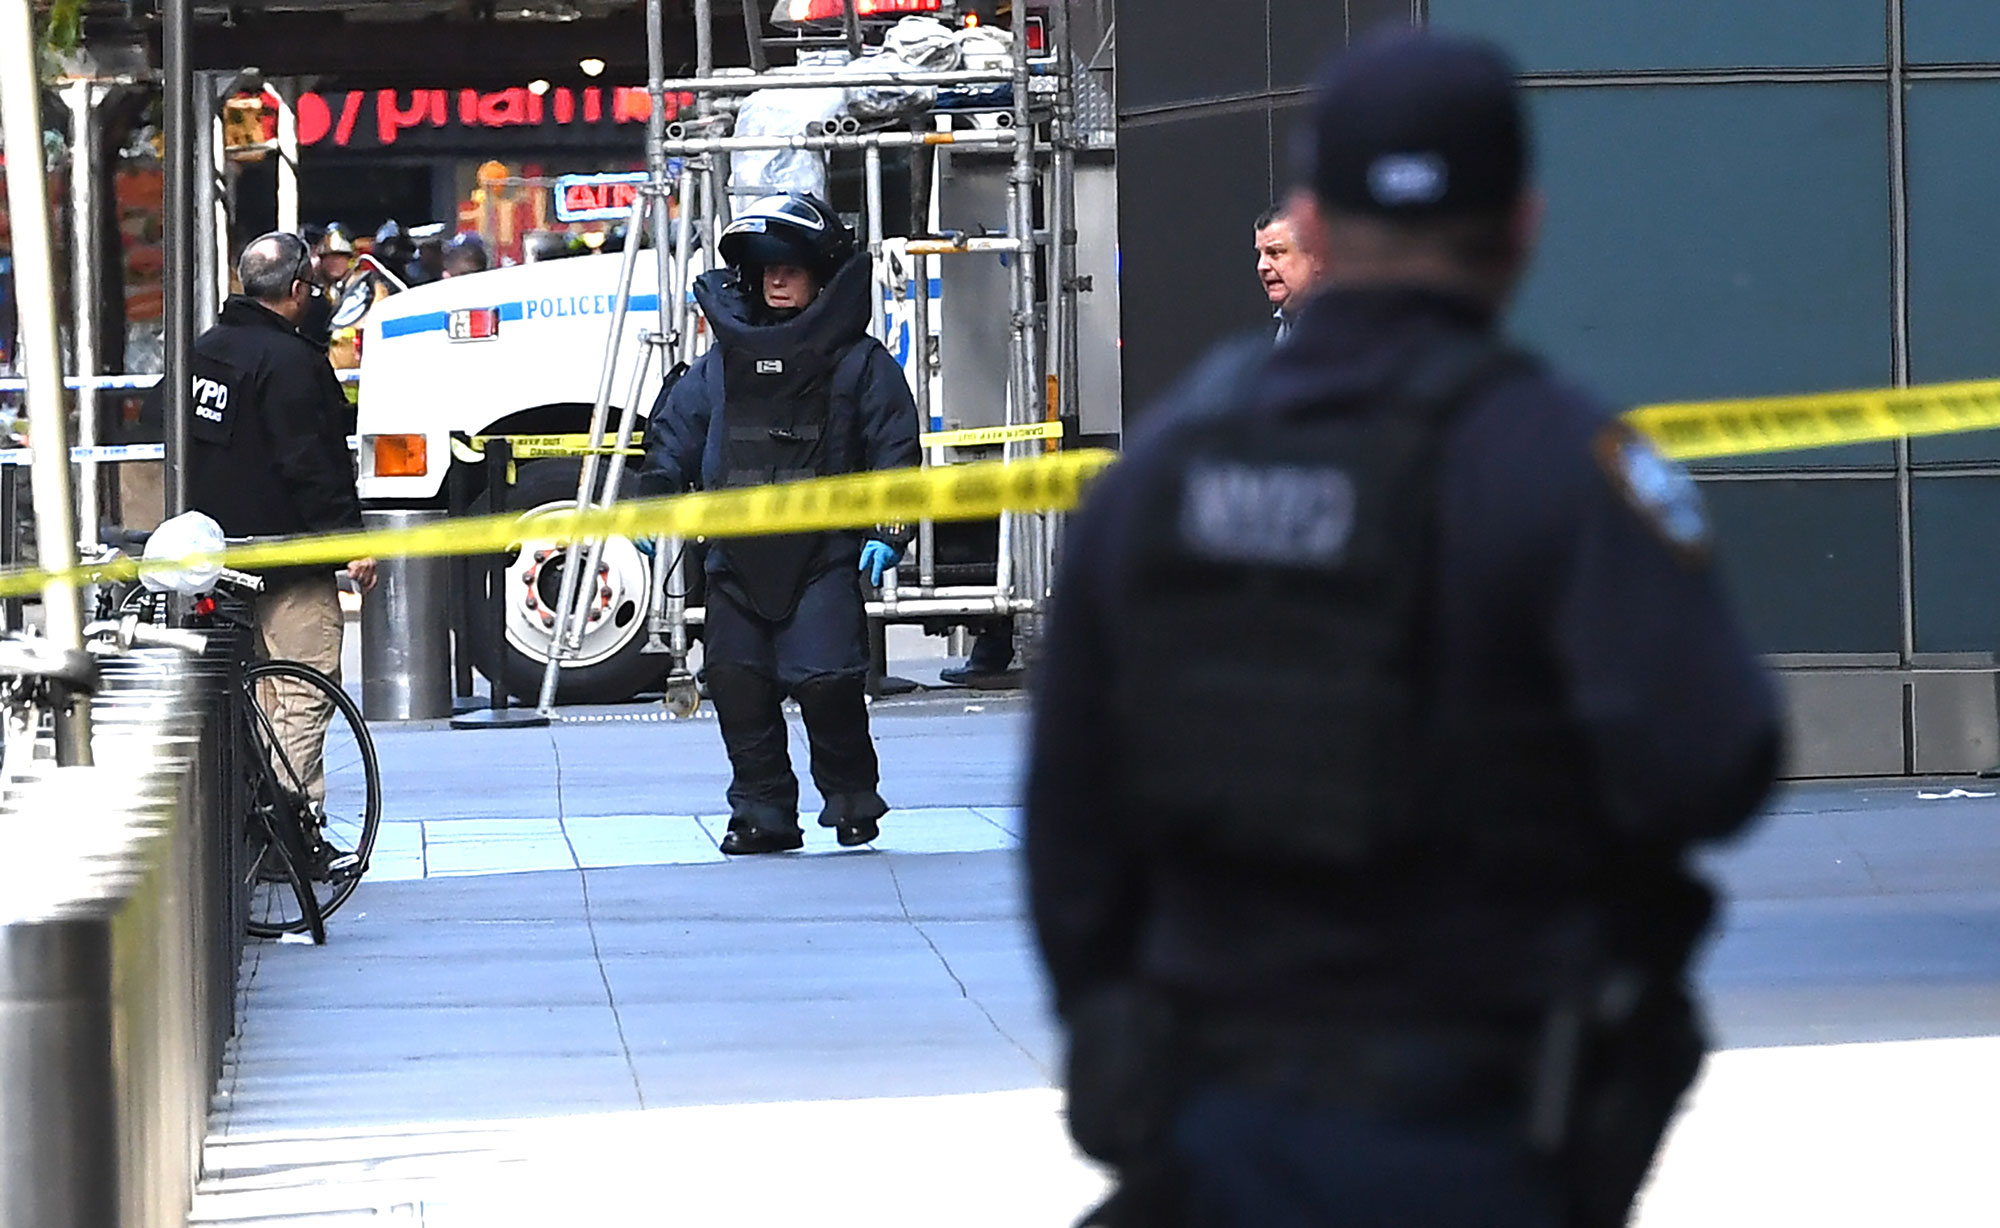 <div class='meta'><div class='origin-logo' data-origin='none'></div><span class='caption-text' data-credit='TIMOTHY A. CLARY/AFP/Getty Images'>A New York Bomb Squad unit exits the Time Warner Building on October 24, 2018.</span></div>